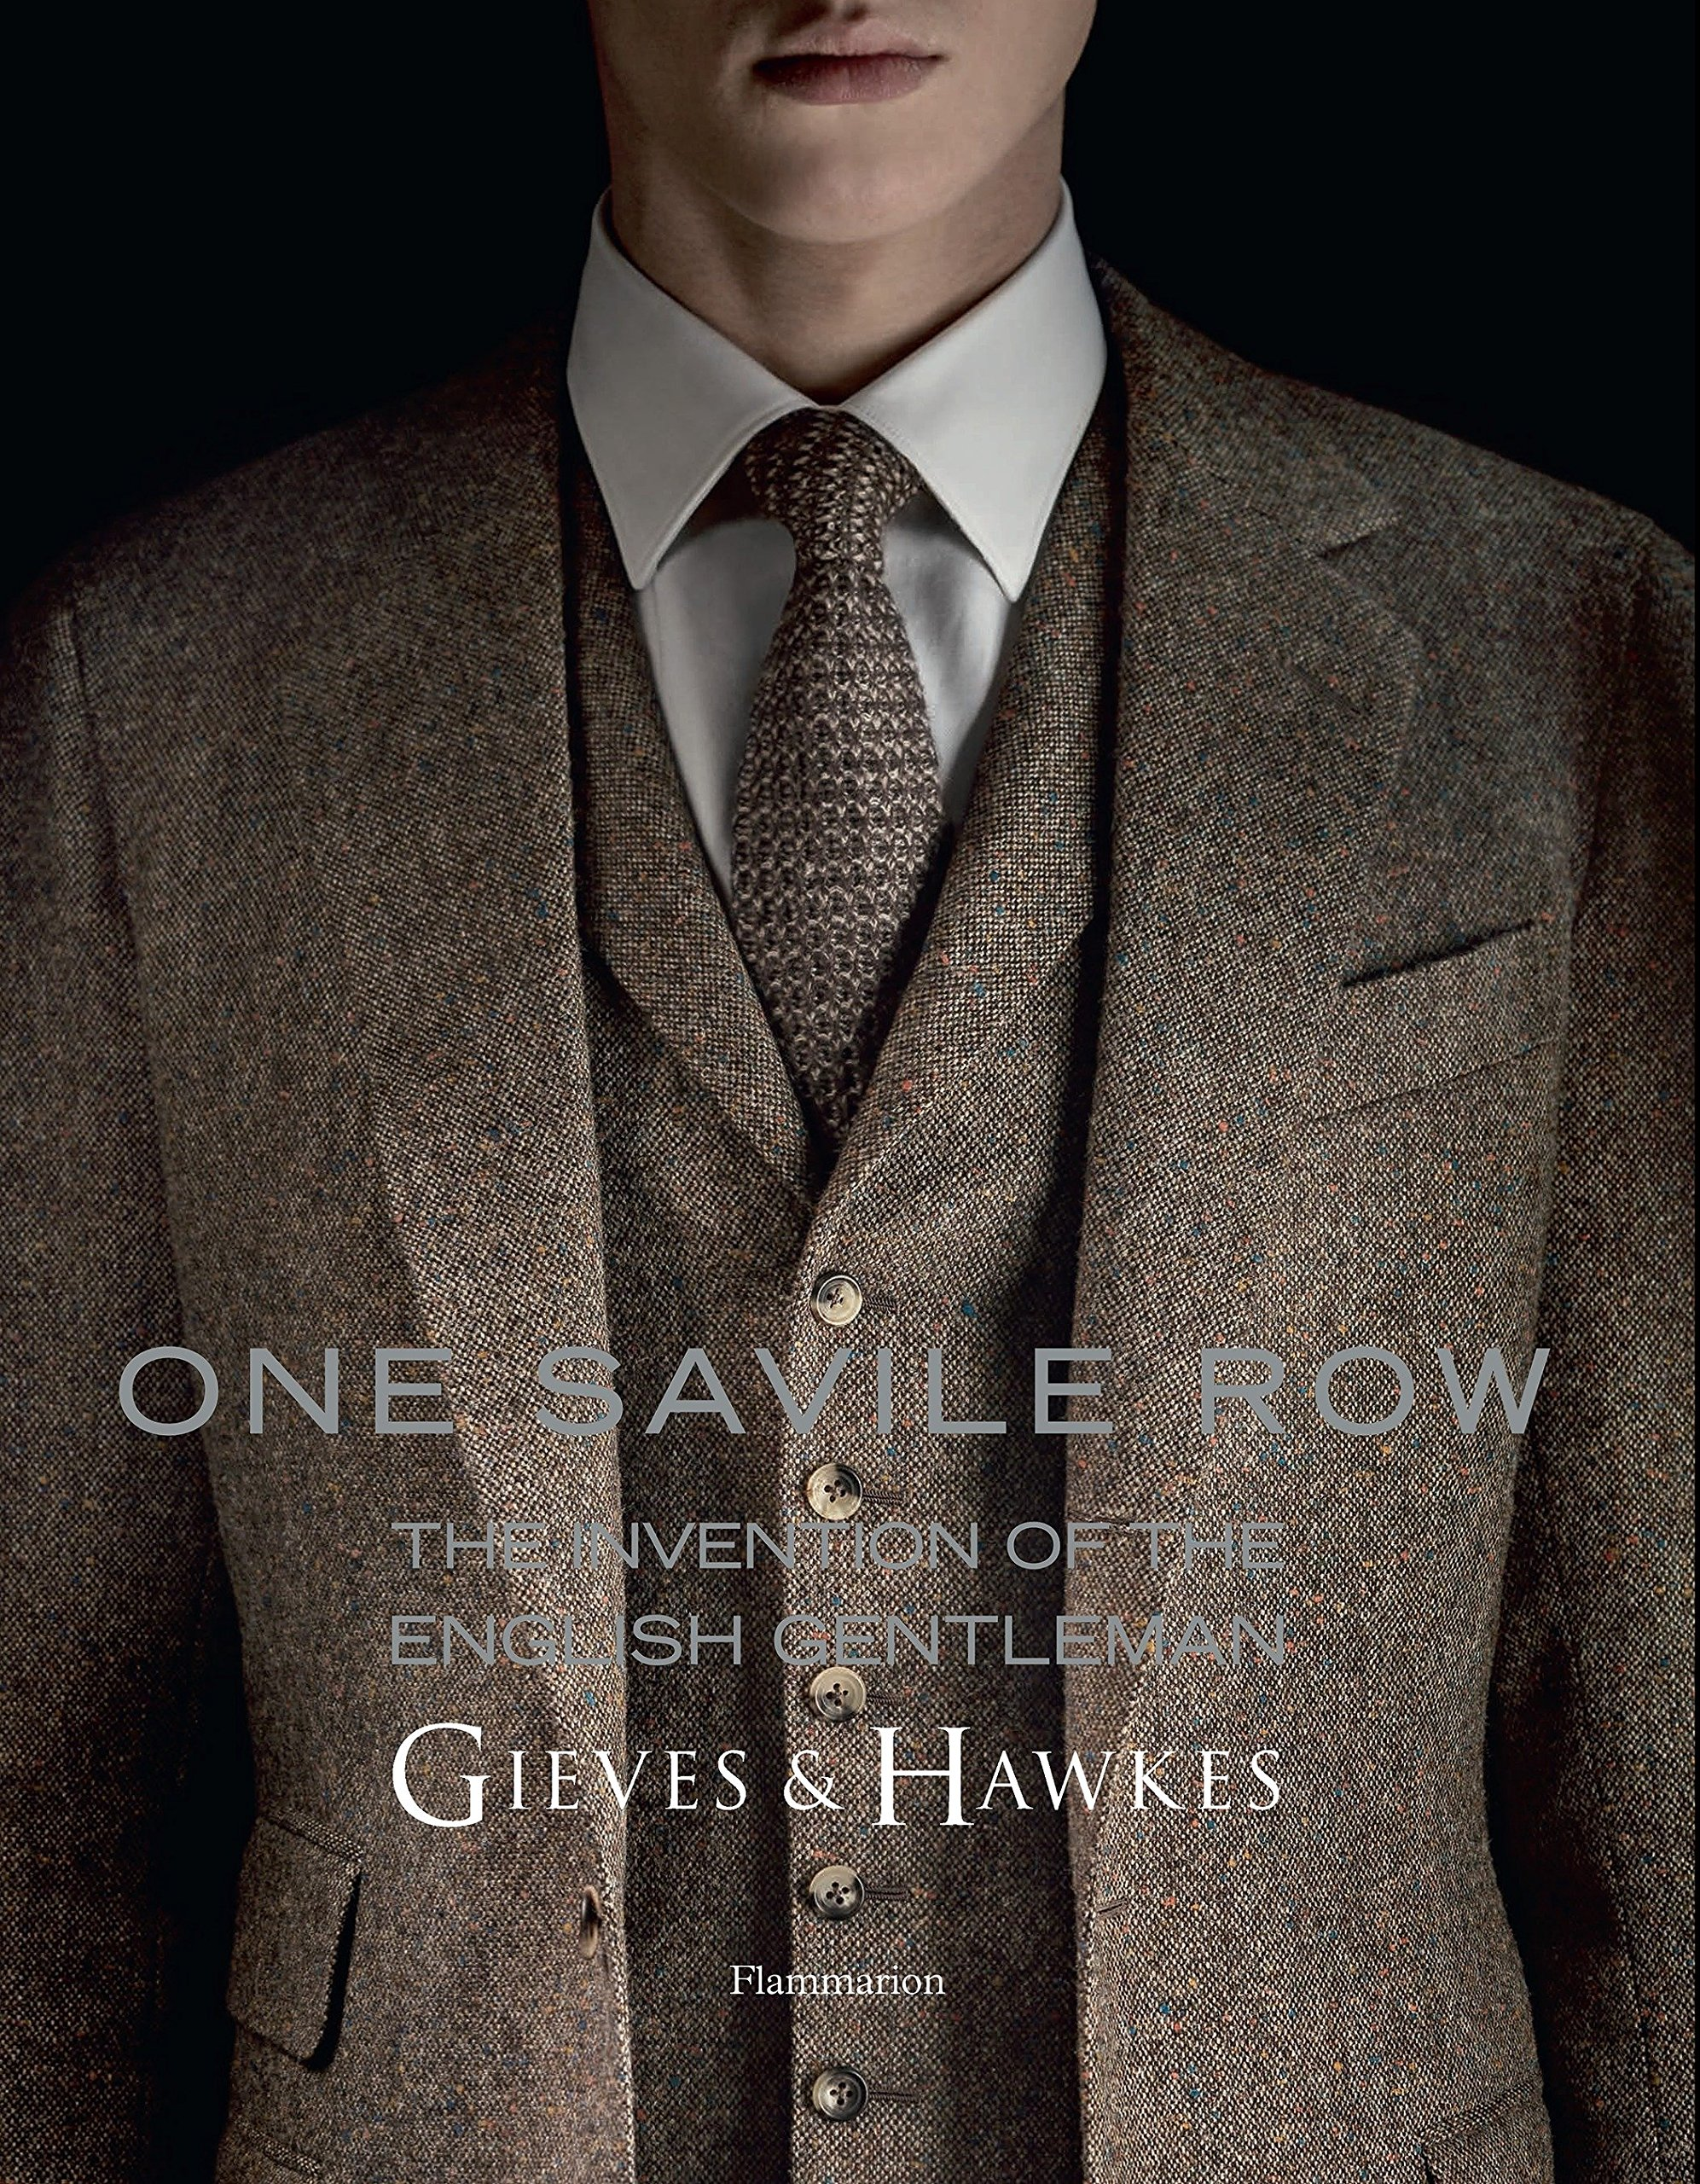 One Savile Row The Invention Of The English Gentleman Gieves